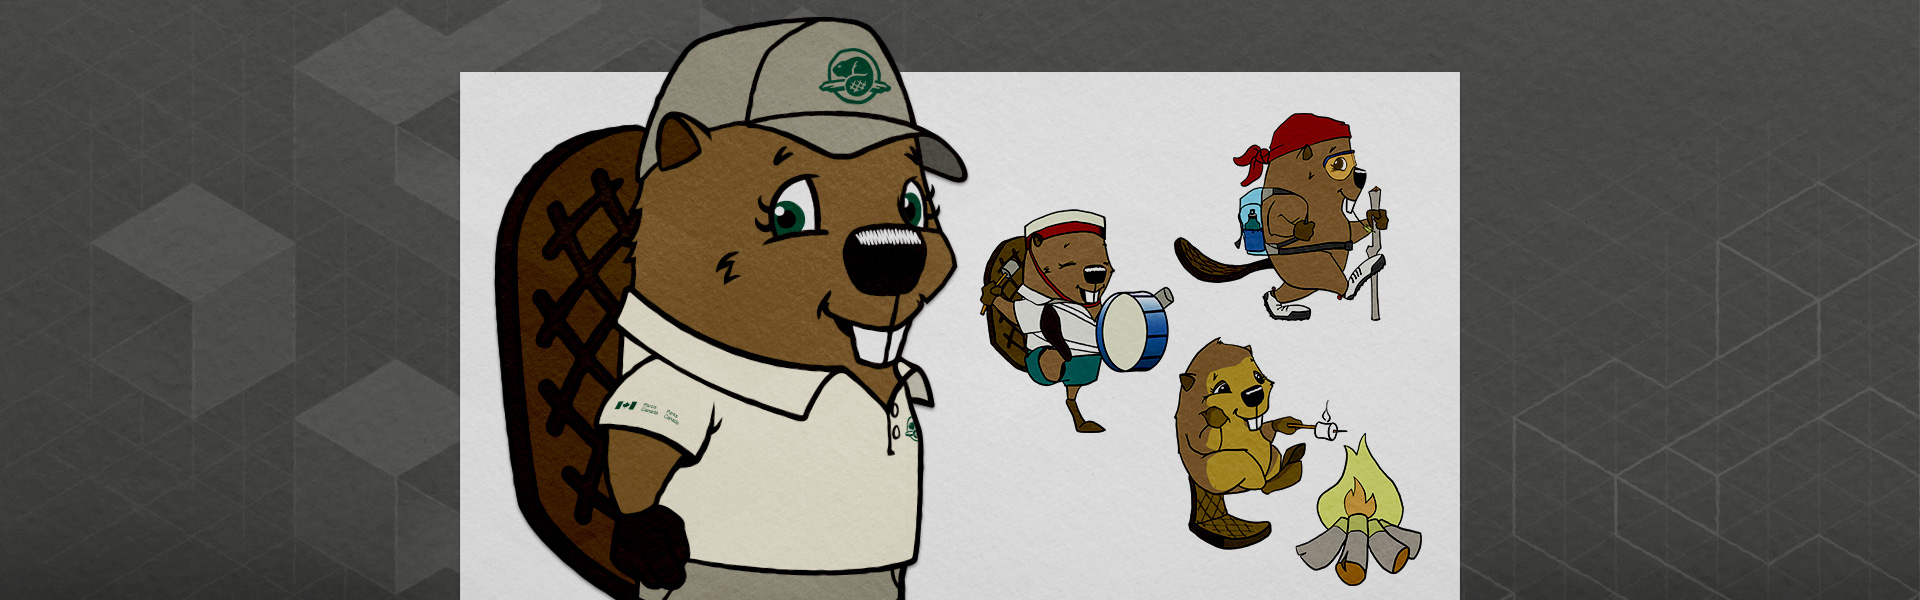 Illustration showing four illustrations of a cartoon girl beaver character, named Parka: one plain standing pose, one of her actively drumming, one where she's hiking and one by the campfire.